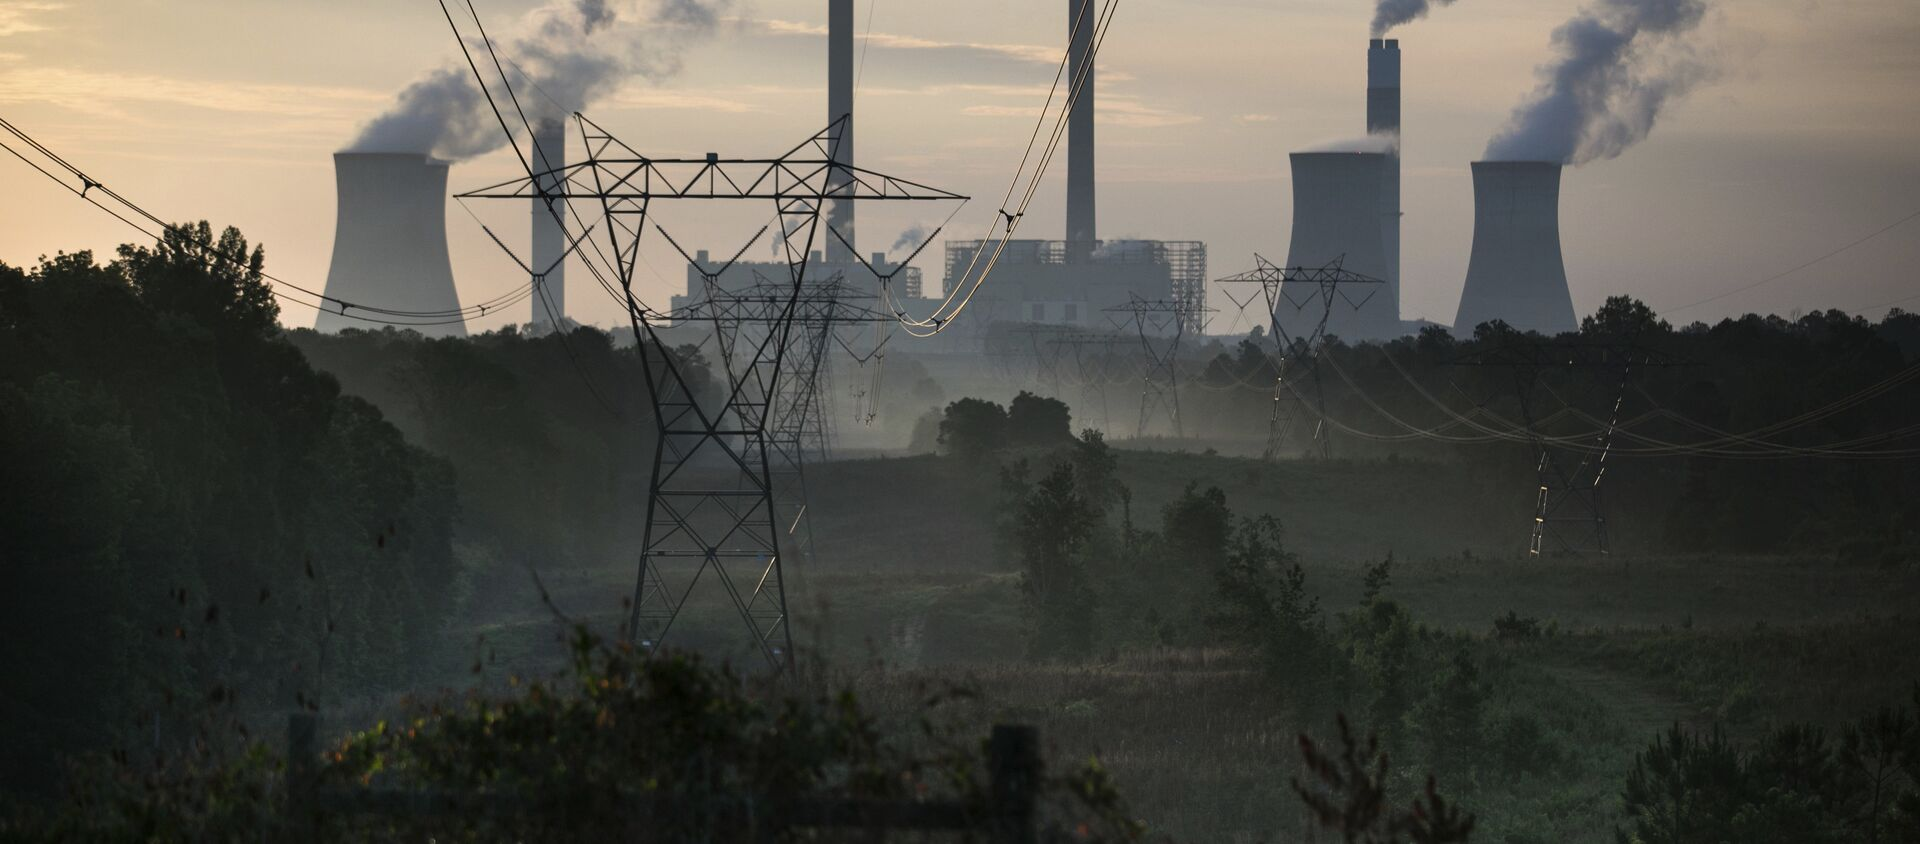 The coal-fired Plant Scherer, one of the nation's top carbon dioxide emitters, stands in the distance in Juliette, Georgia., Saturday, 3 June 2017.  - Sputnik International, 1920, 06.04.2021